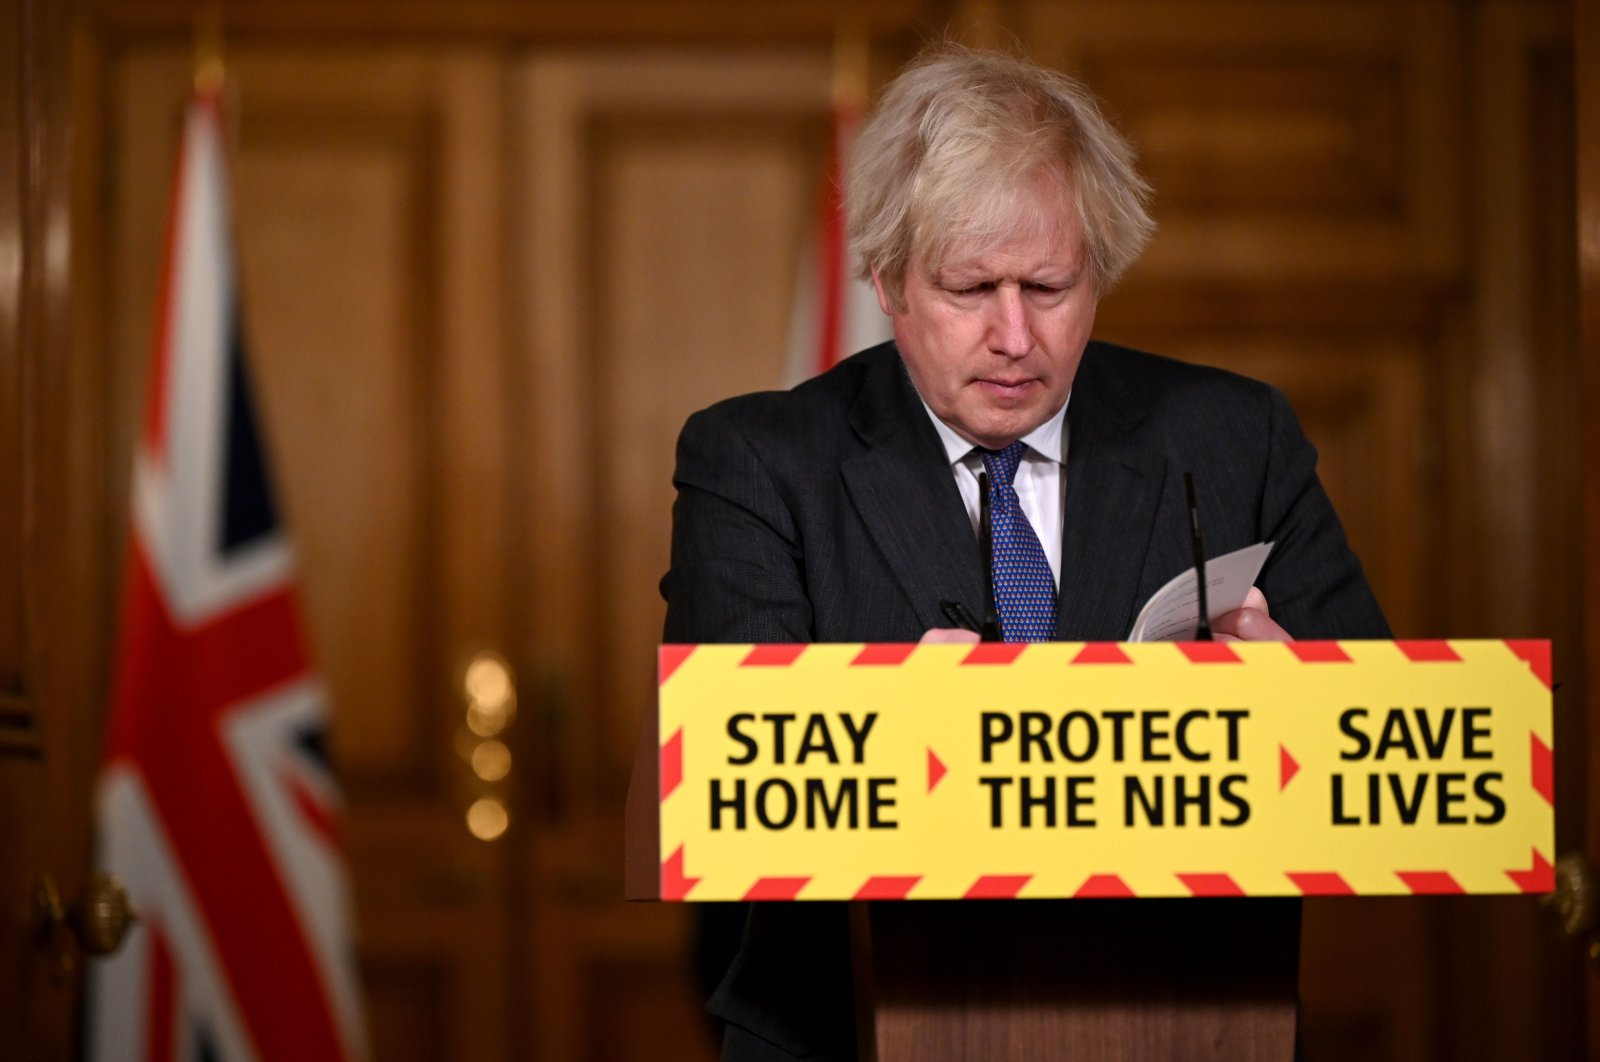 Britain's Prime Minister Boris Johnson speaks during a virtual press conference on the COVID-19 pandemic, at 10 Downing Street in central London on Jan. 22, 2021. (AFP Photo)